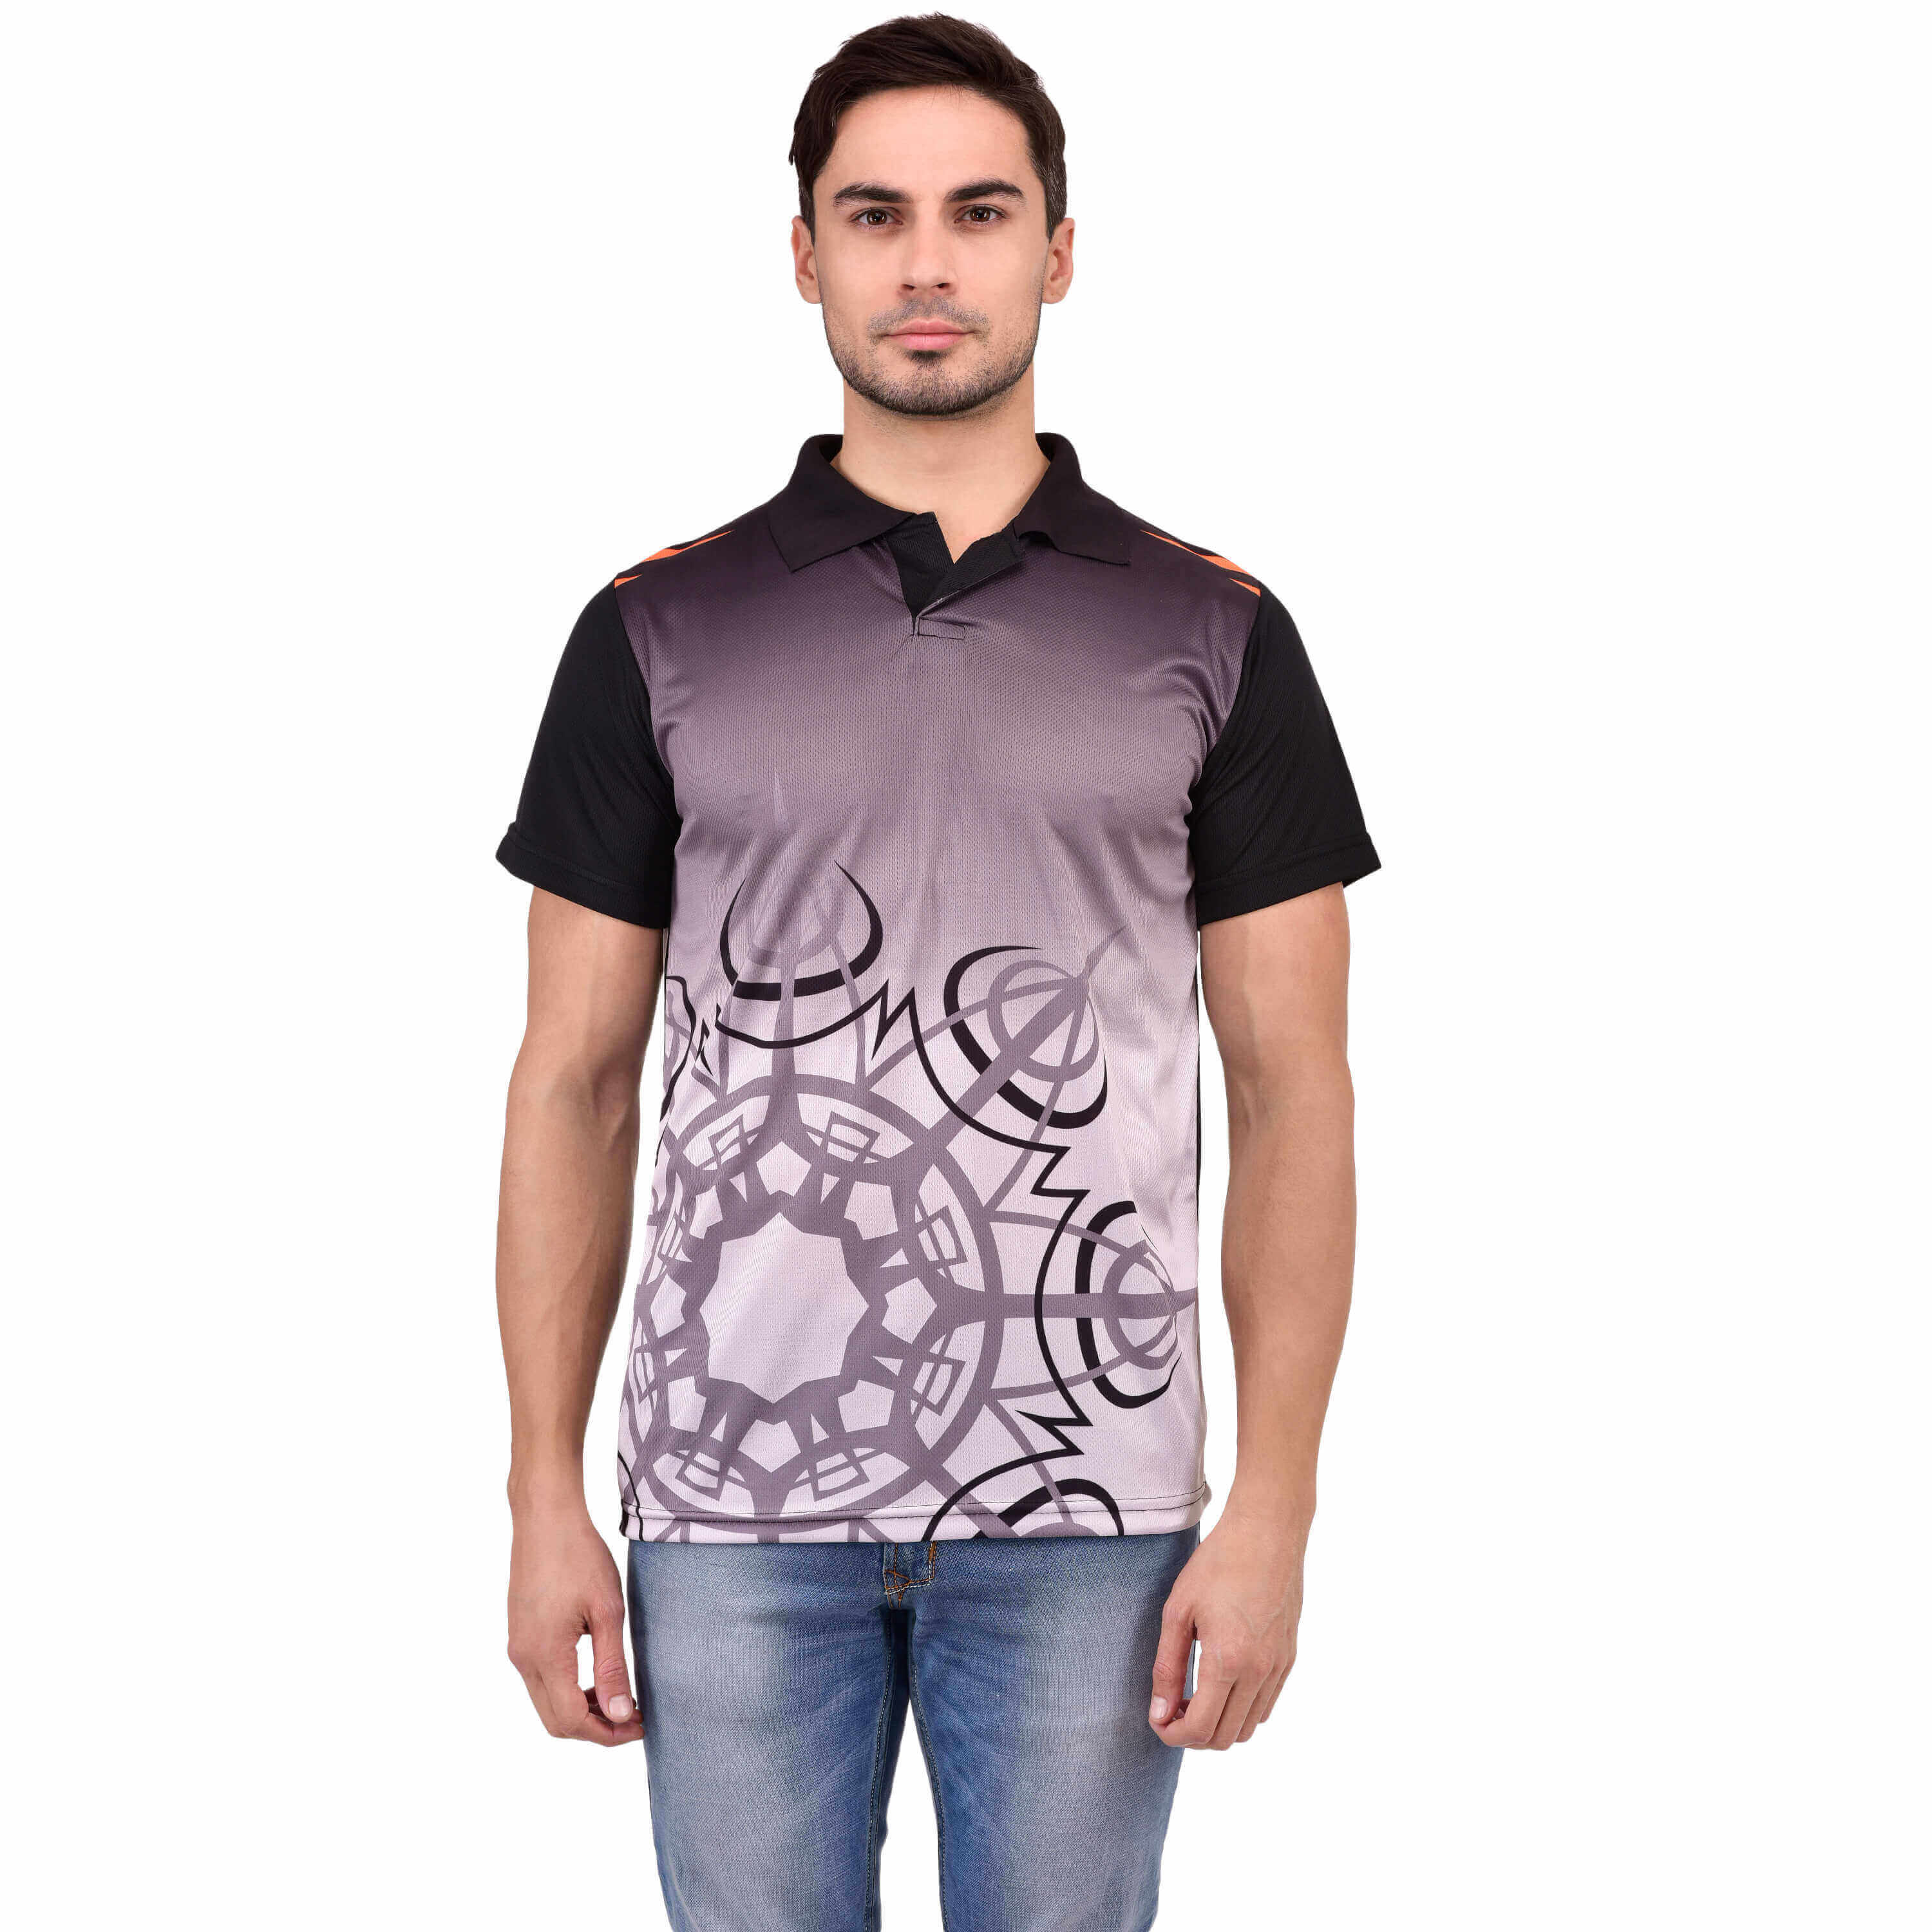 Cheap T Shirts Manufacturers in Srinagar